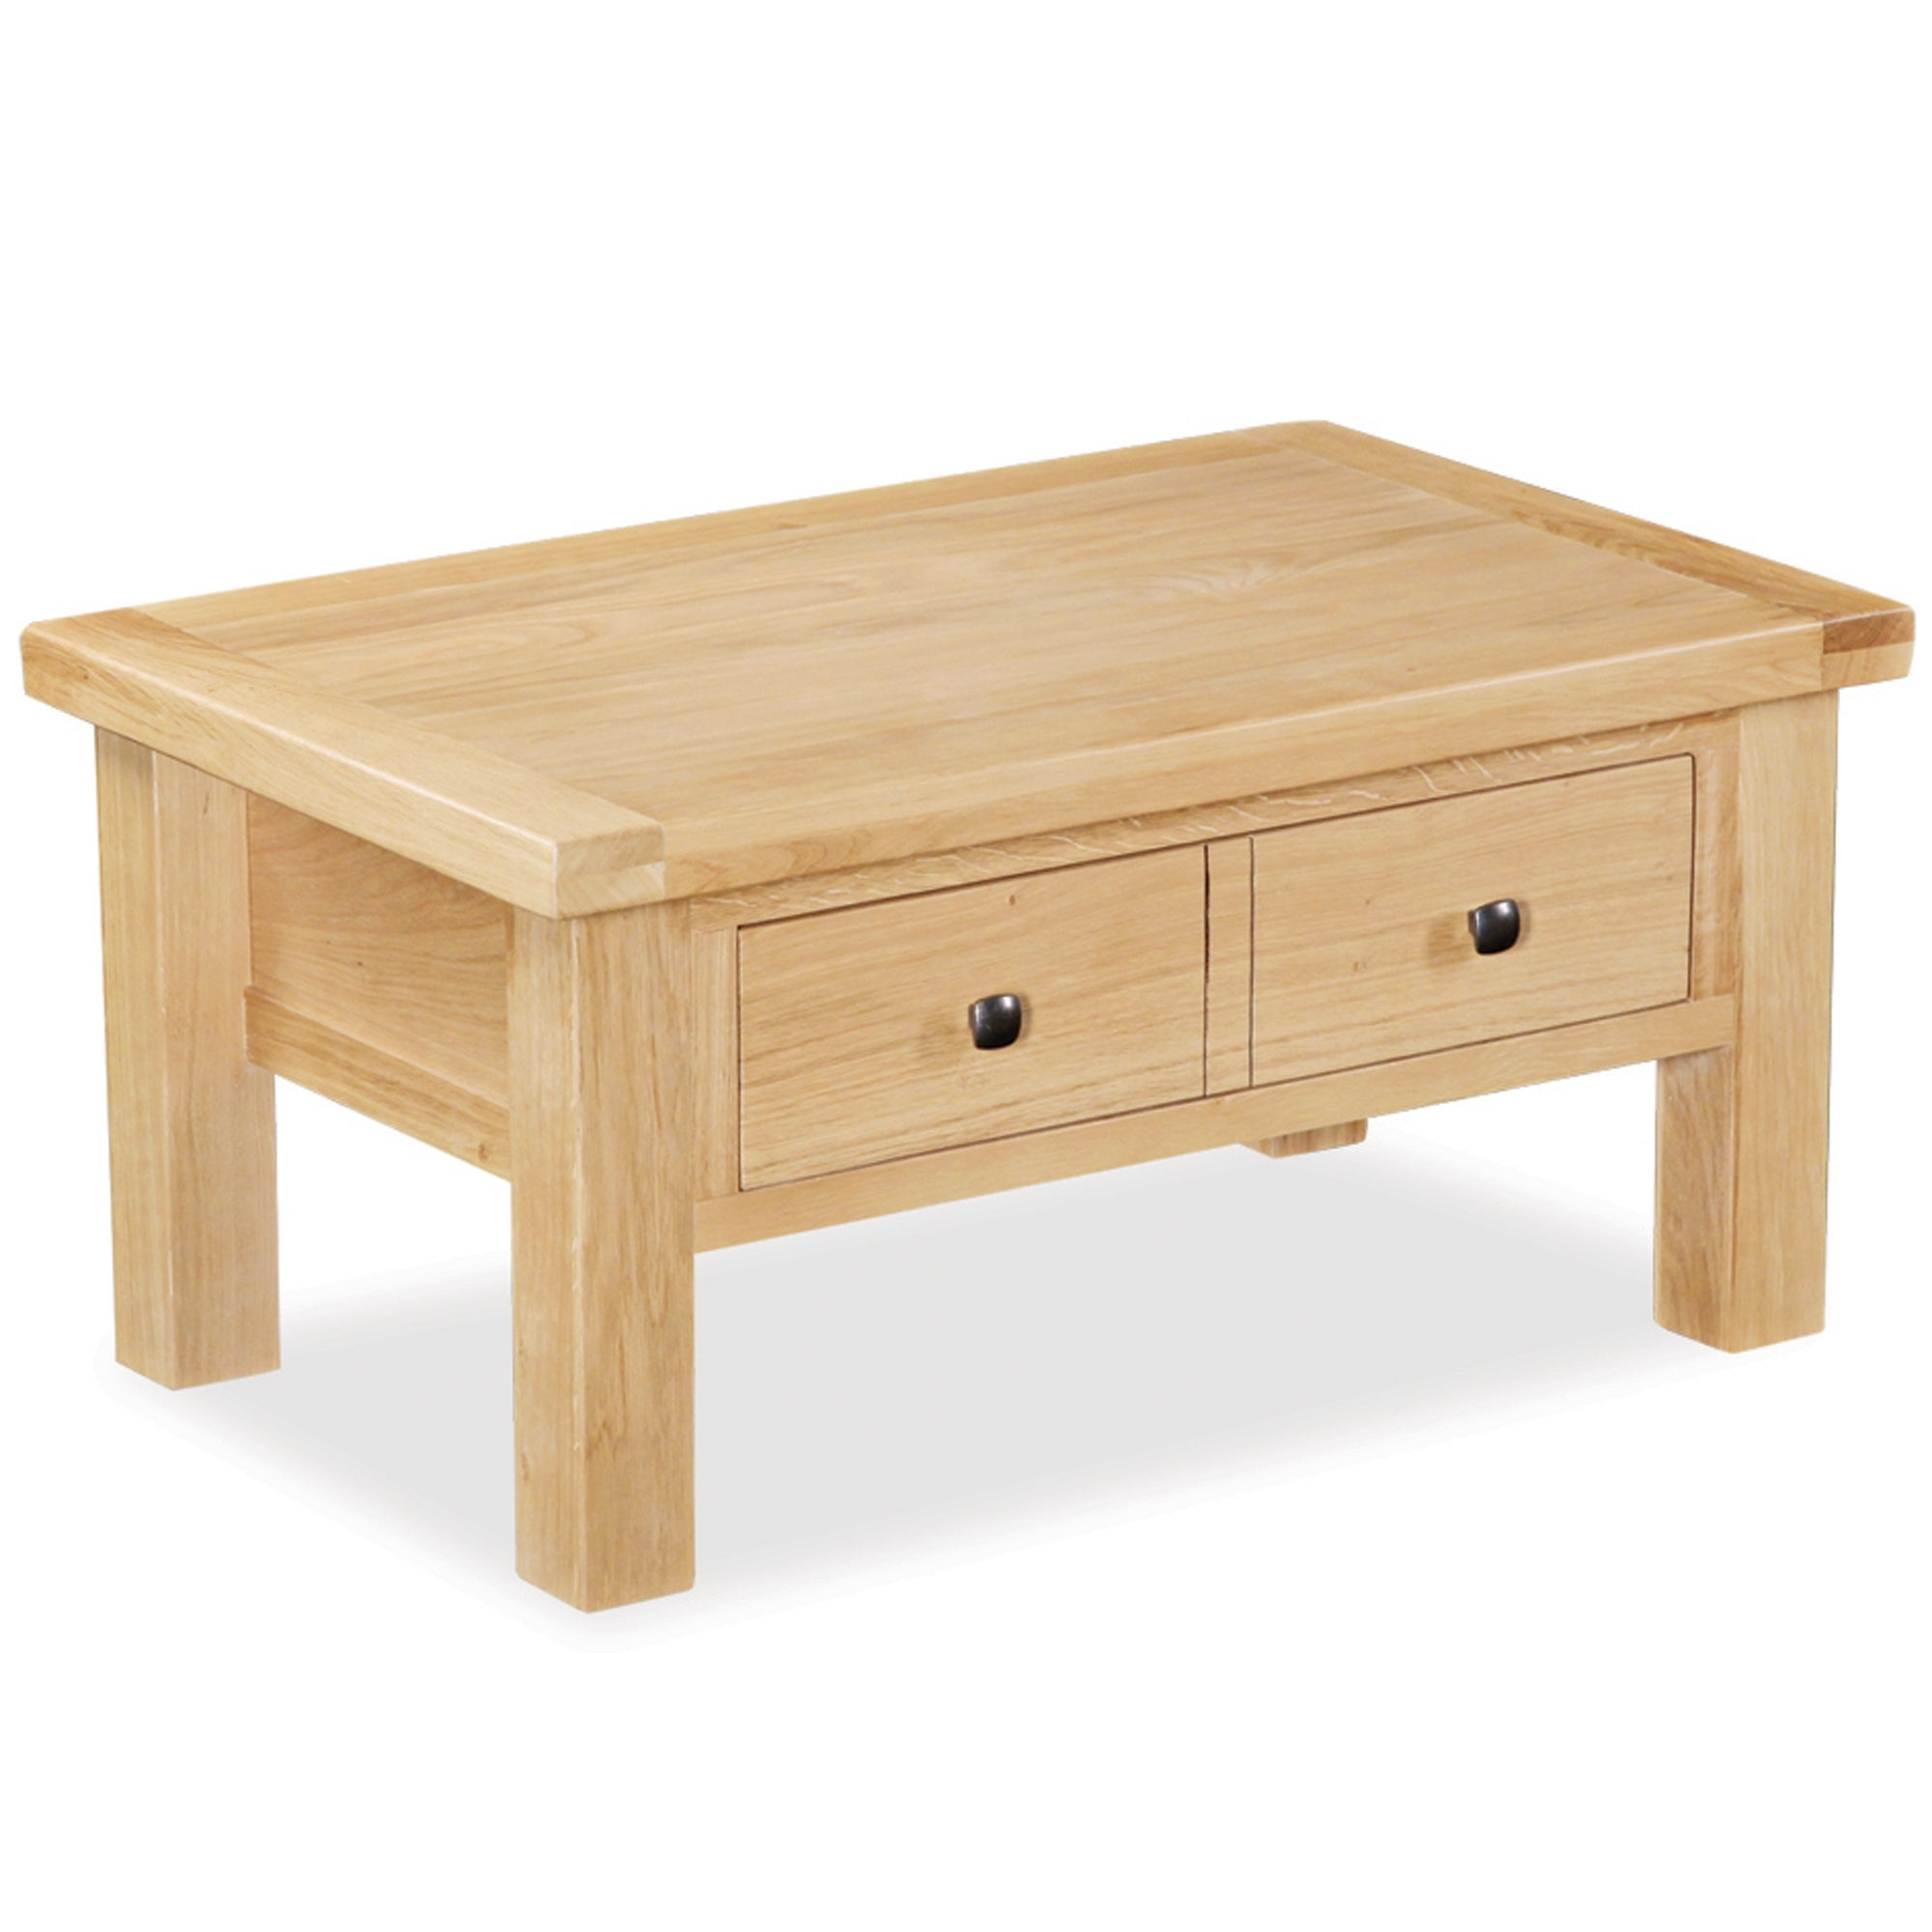 Harrogate Oak Coffee Table with Drawer